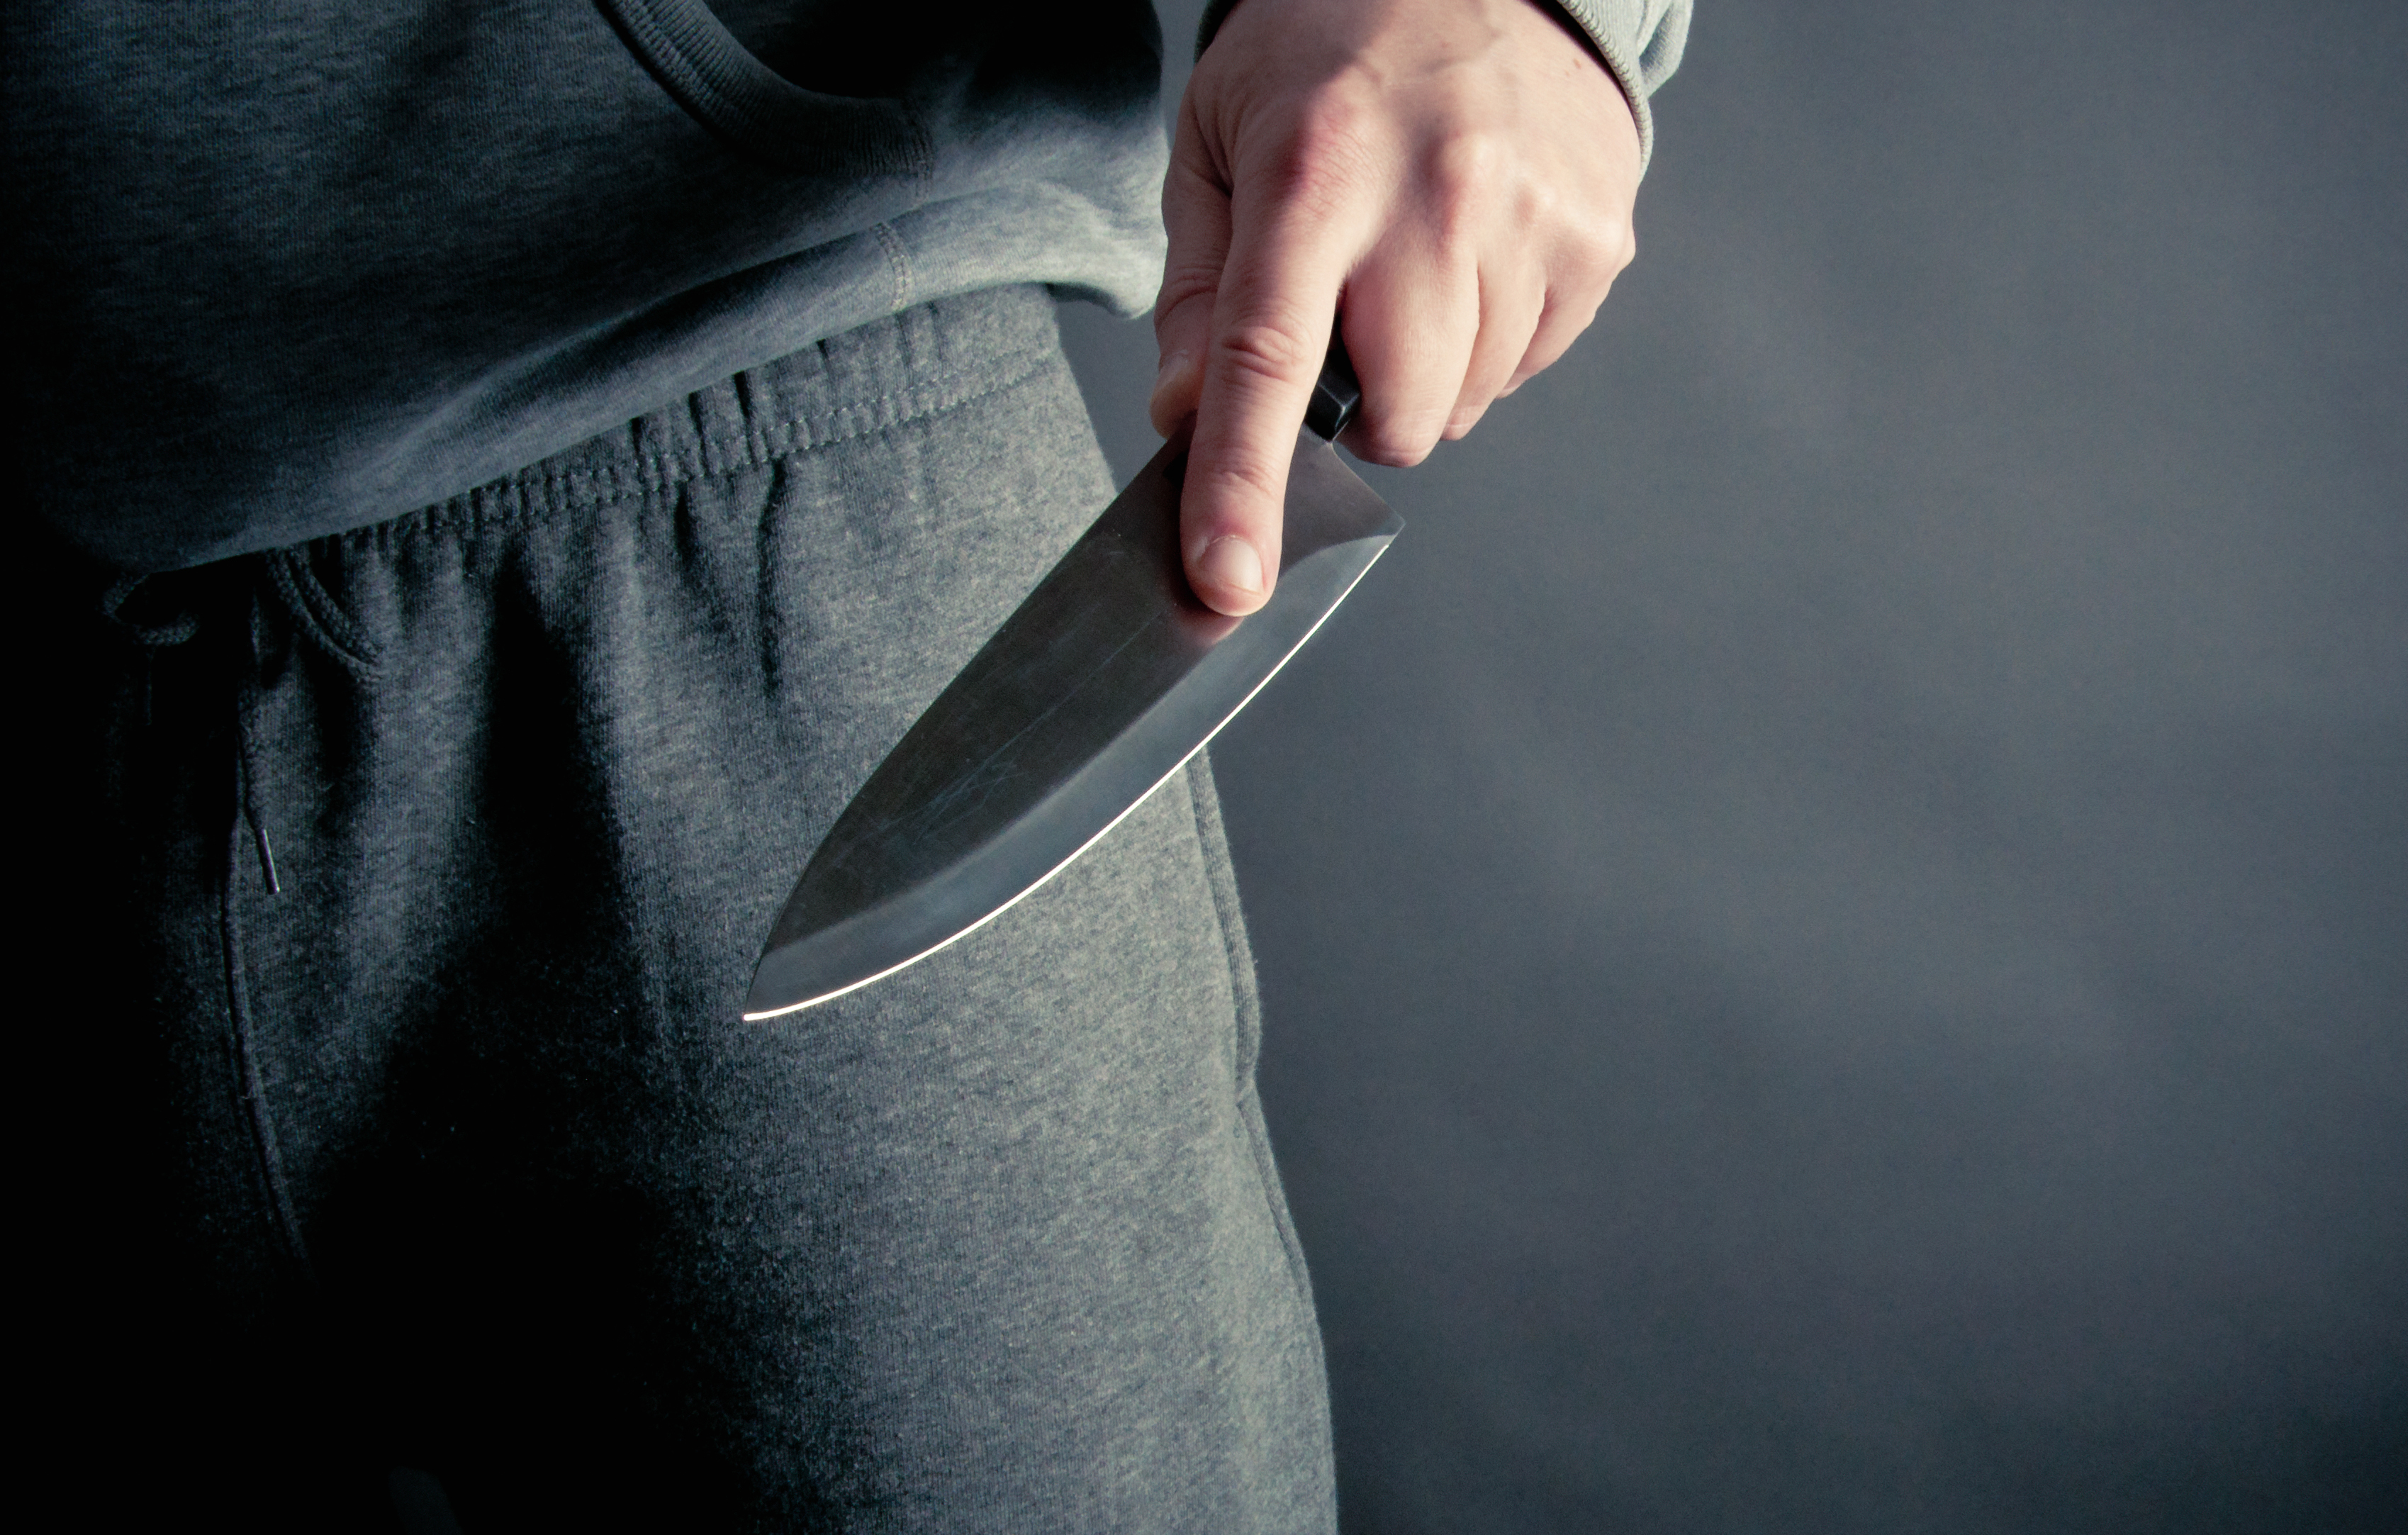 knife crime Knife crime has increased over the past couple of years due to the amount of gang violence going on while the large majority of young people follow the law a small number of people do find themselves.